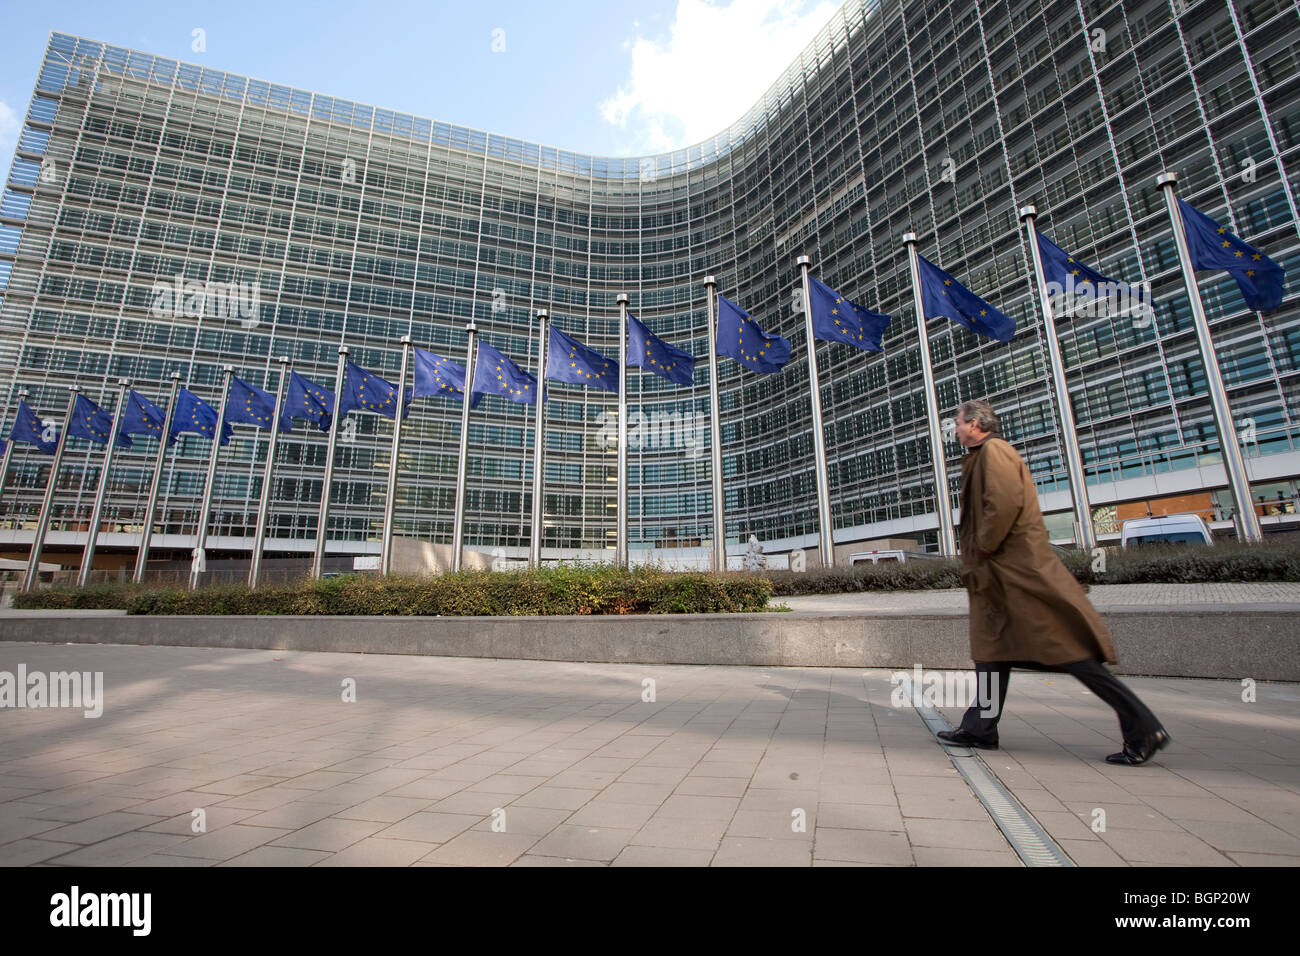 A man walks next to the european flags outside the Berlaymont building, the European Commission headquarters in - Stock Image